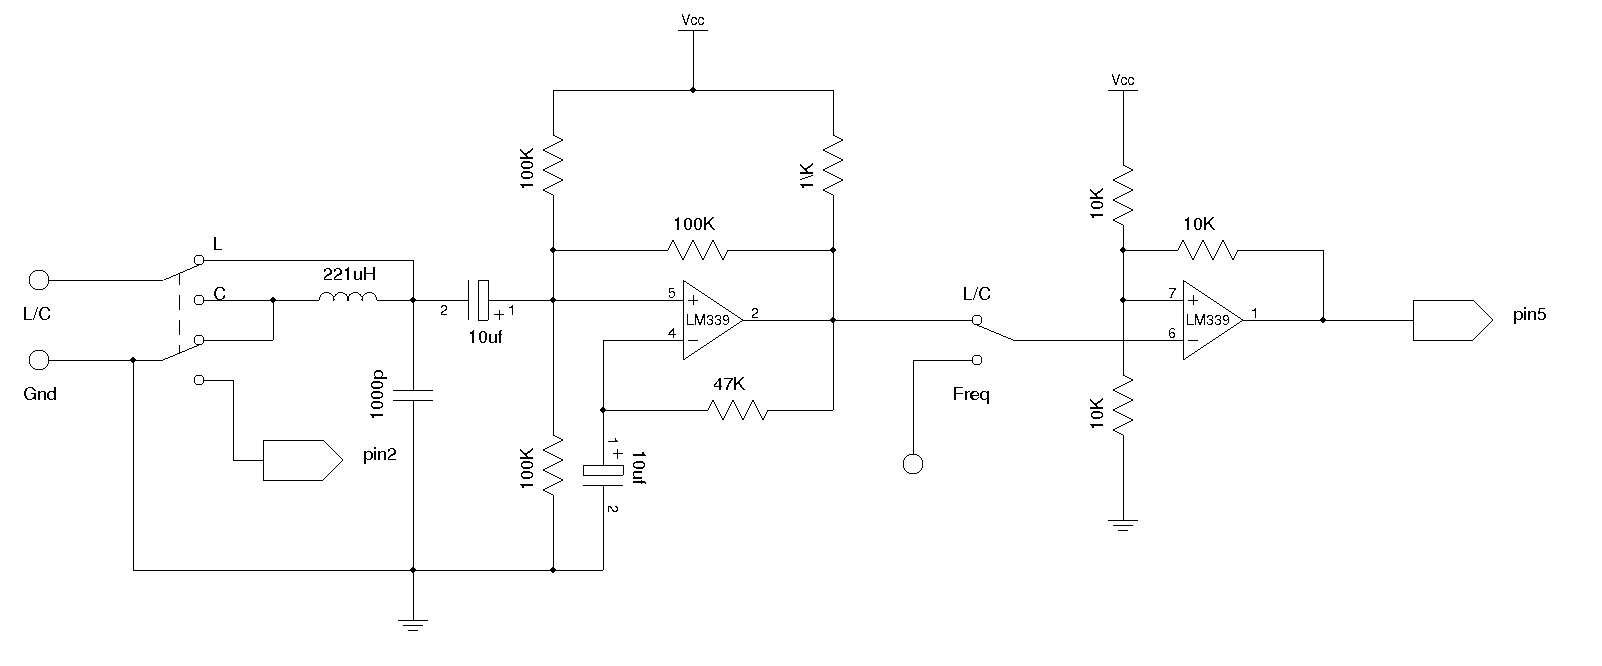 Results Page 396 About Auto On Off Searching Circuits At Proximity Sensor Using Ic Lm339 Circuit Diagram For Line Follower Avr Lc Meter With Frequency Measurement